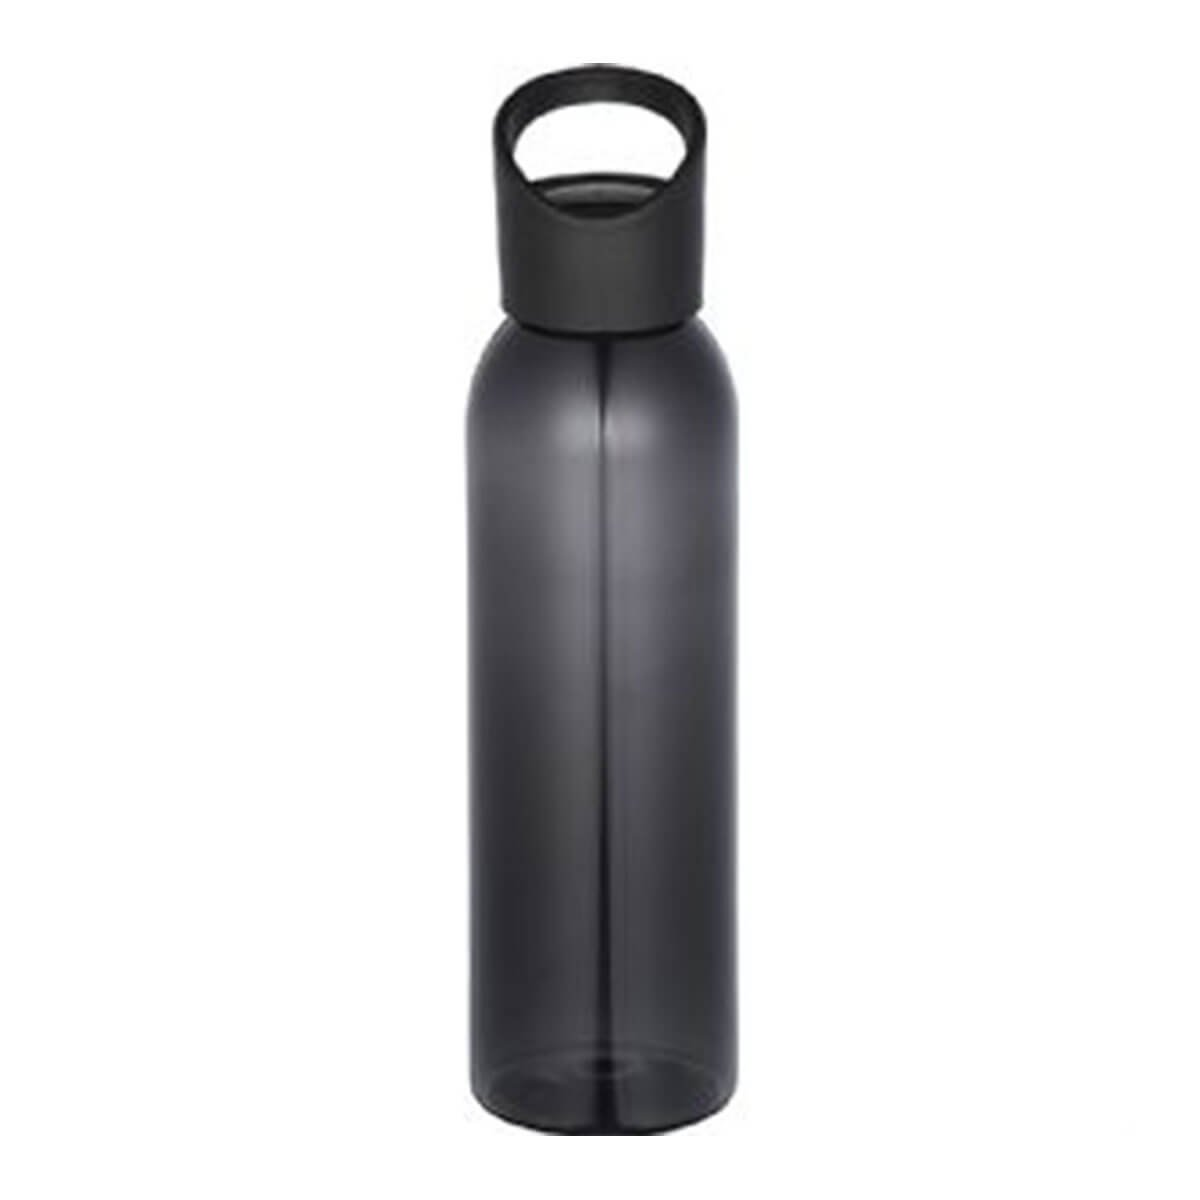 Casanova Tritan Sports Bottle – Black-Black.